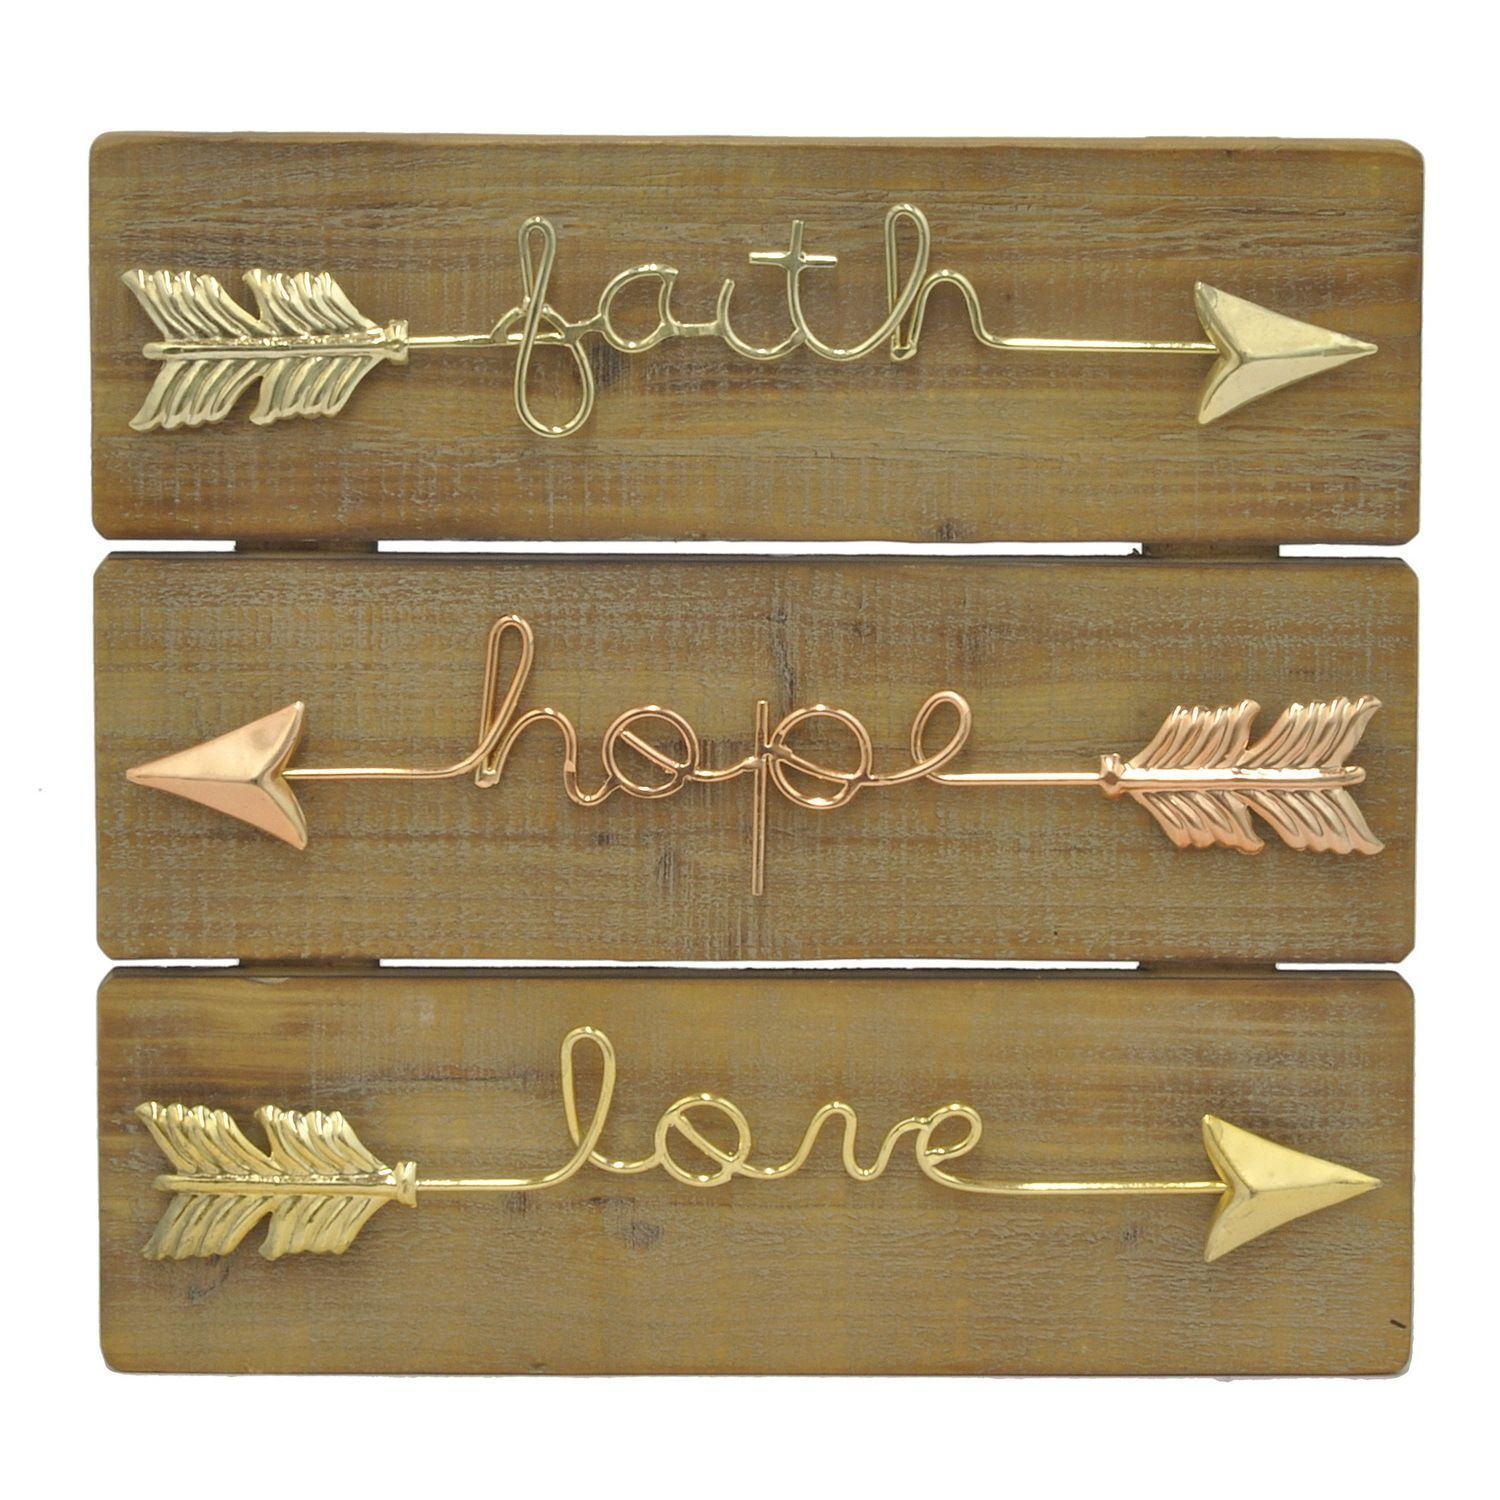 Attrayant Three Hands Inspirational Arrows Goldtone Copper Wood Metal Wall Decor  (Metal Art), Gold